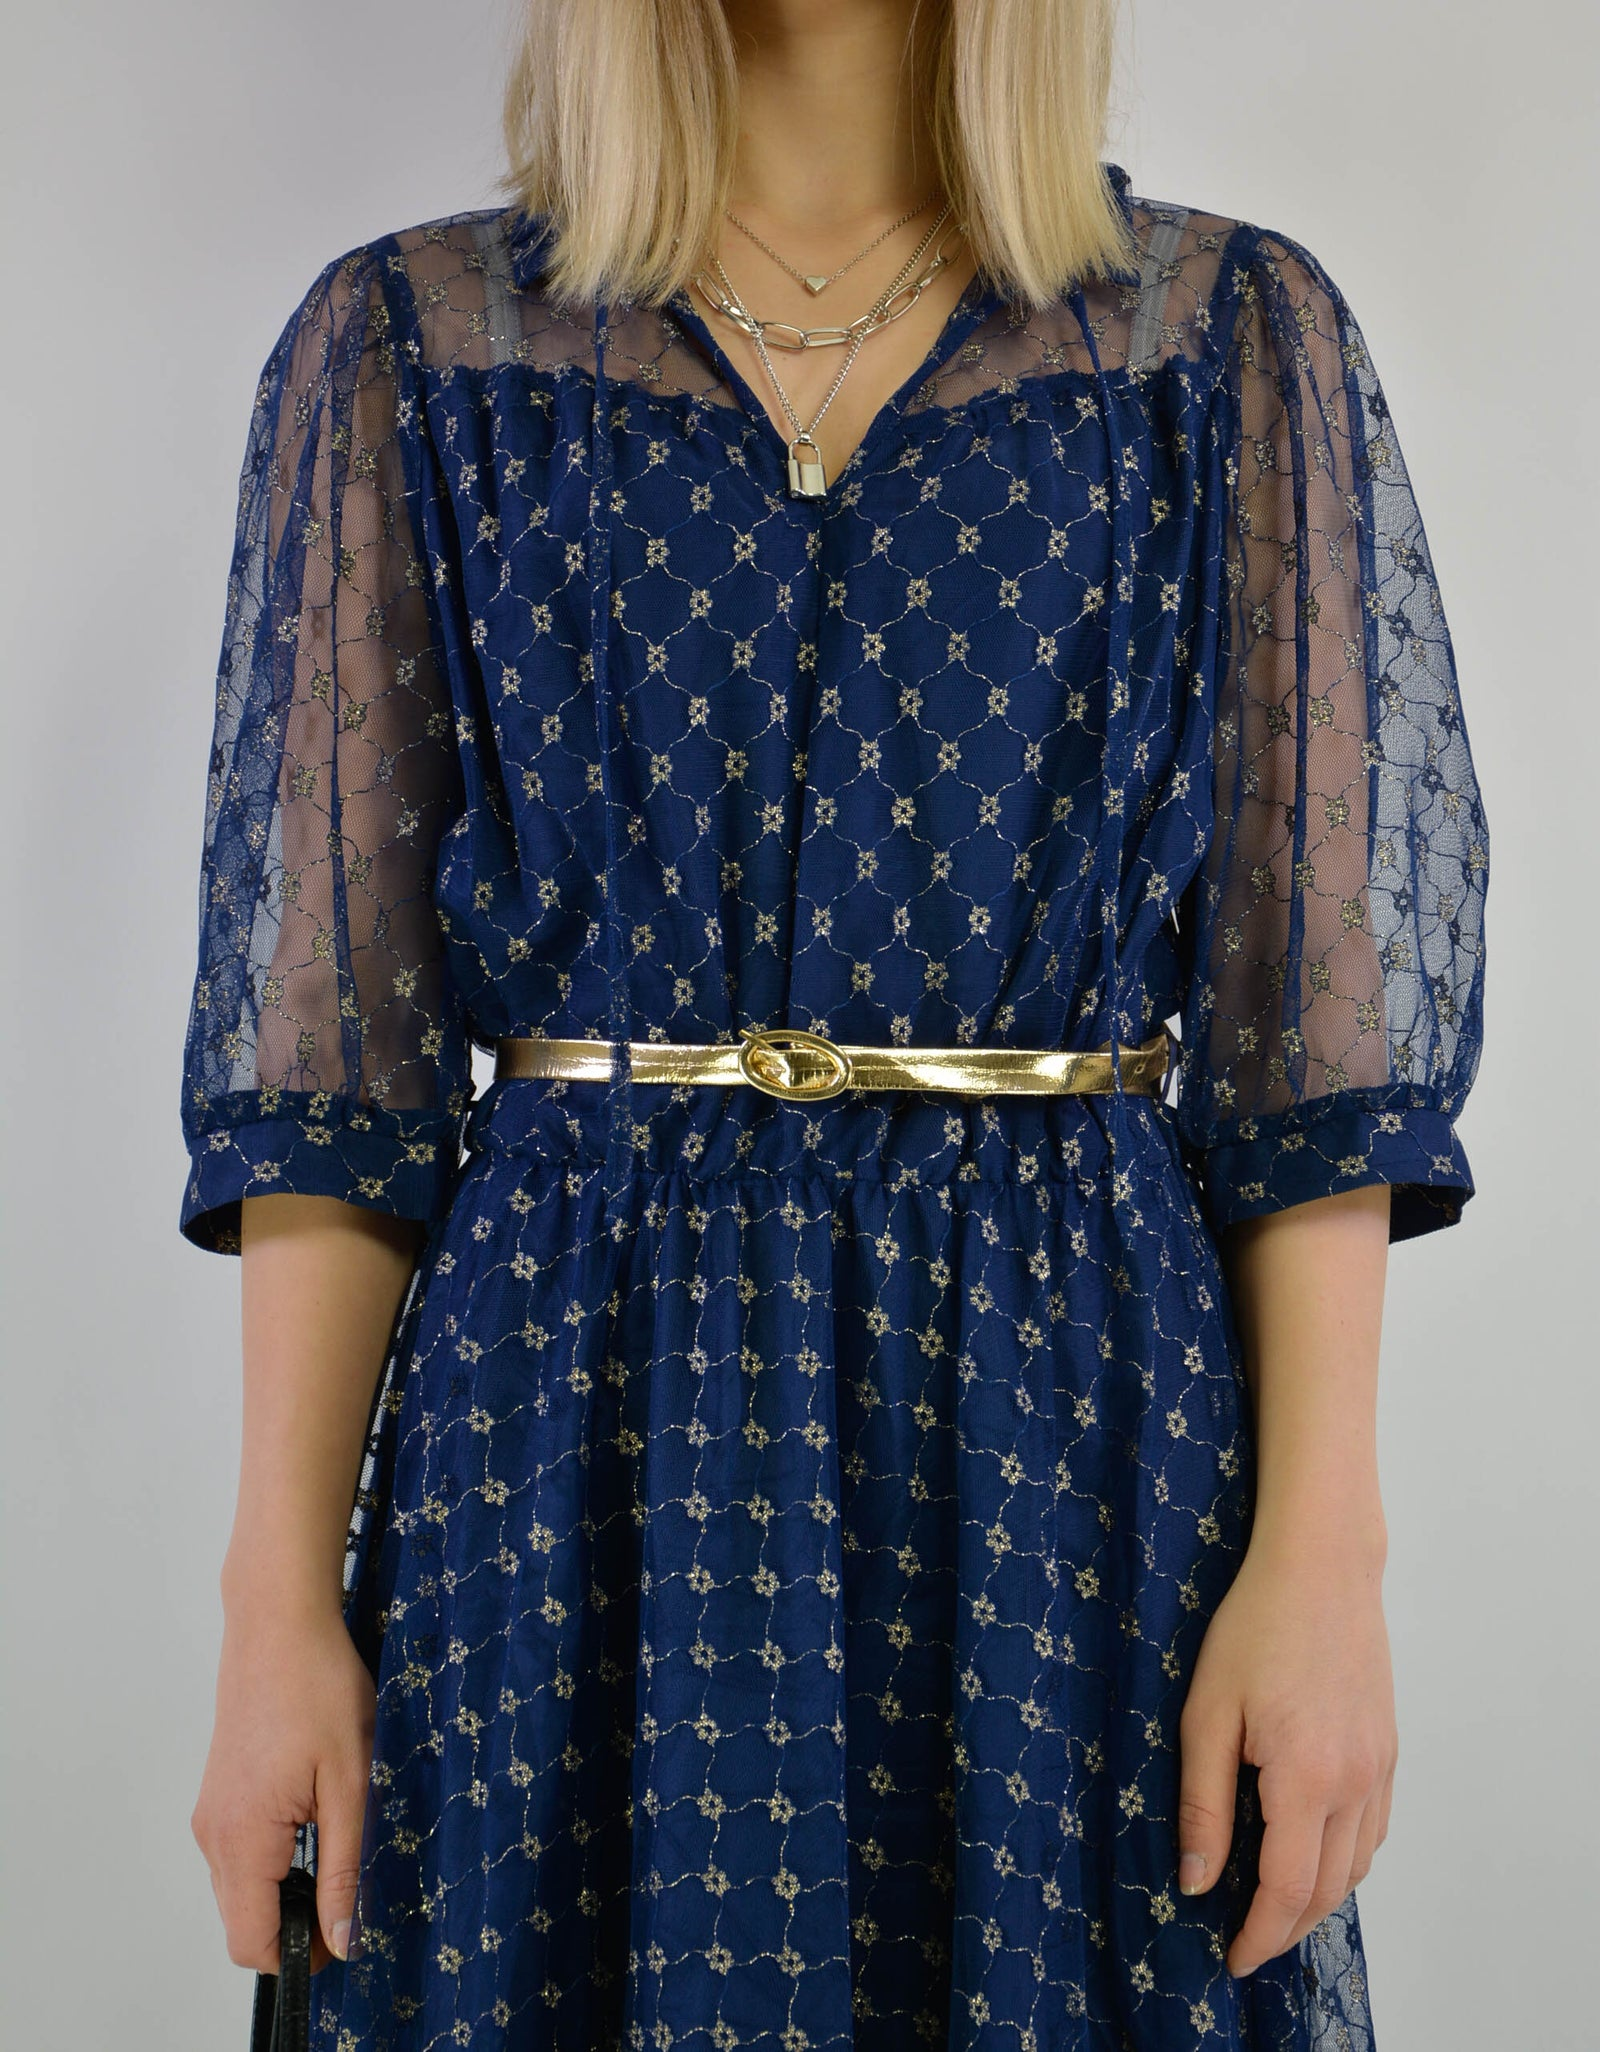 Blue metallic dress - PICKNWEIGHT - VINTAGE KILO STORE